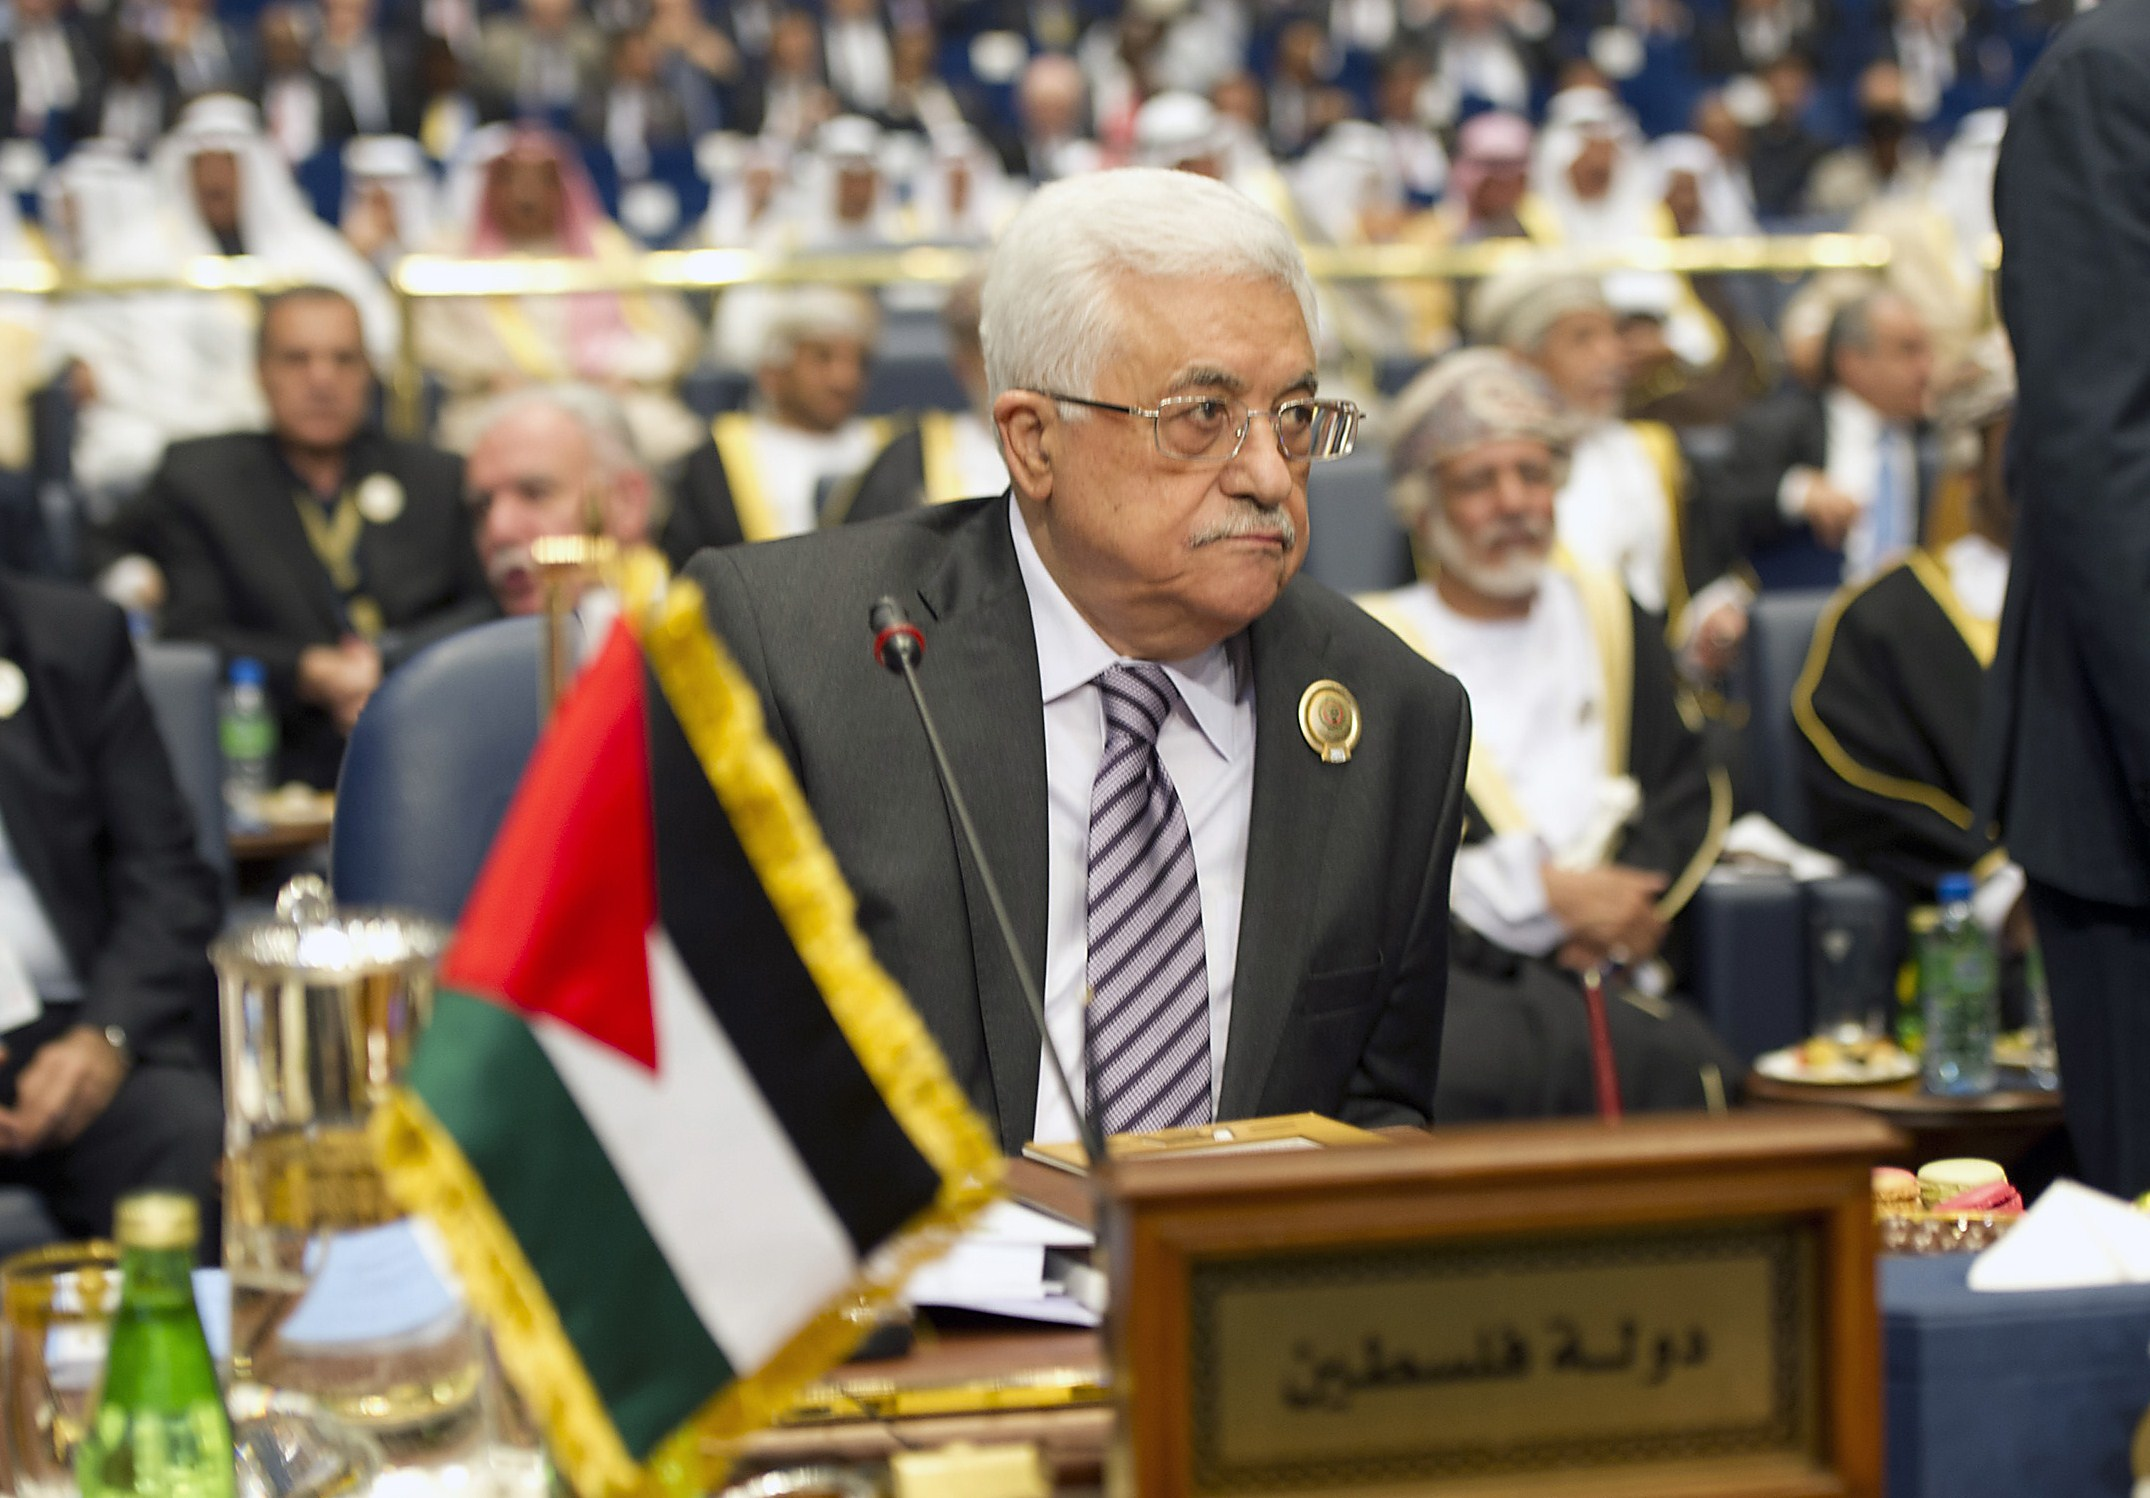 Palestinian leader Mahmud Abbas attends the 25th Arab League summit, held for the first time in Kuwait City, on March 25, 2014. Arab leaders meeting in Kuwait are expected to back a Palestinian refusal to recognise Israel as a Jewish state, an Israeli demand that threatens to derail peace talks.  (AFP PHOTO/YASSER AL-ZAYYAT)